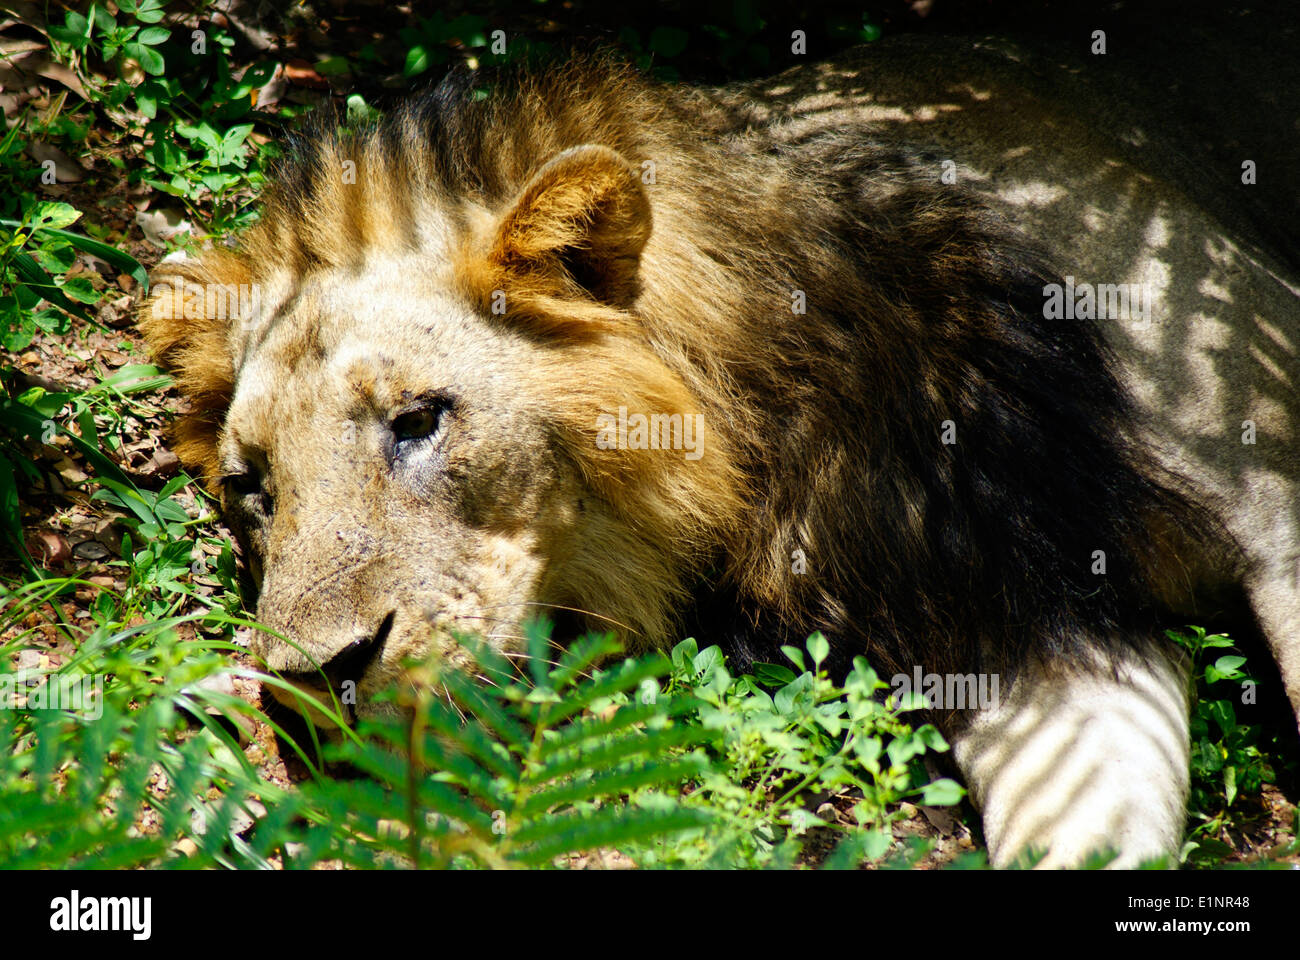 Lion laying down Panthera leo persica or Asiatic lion Indian Lion head closeup view - Stock Image